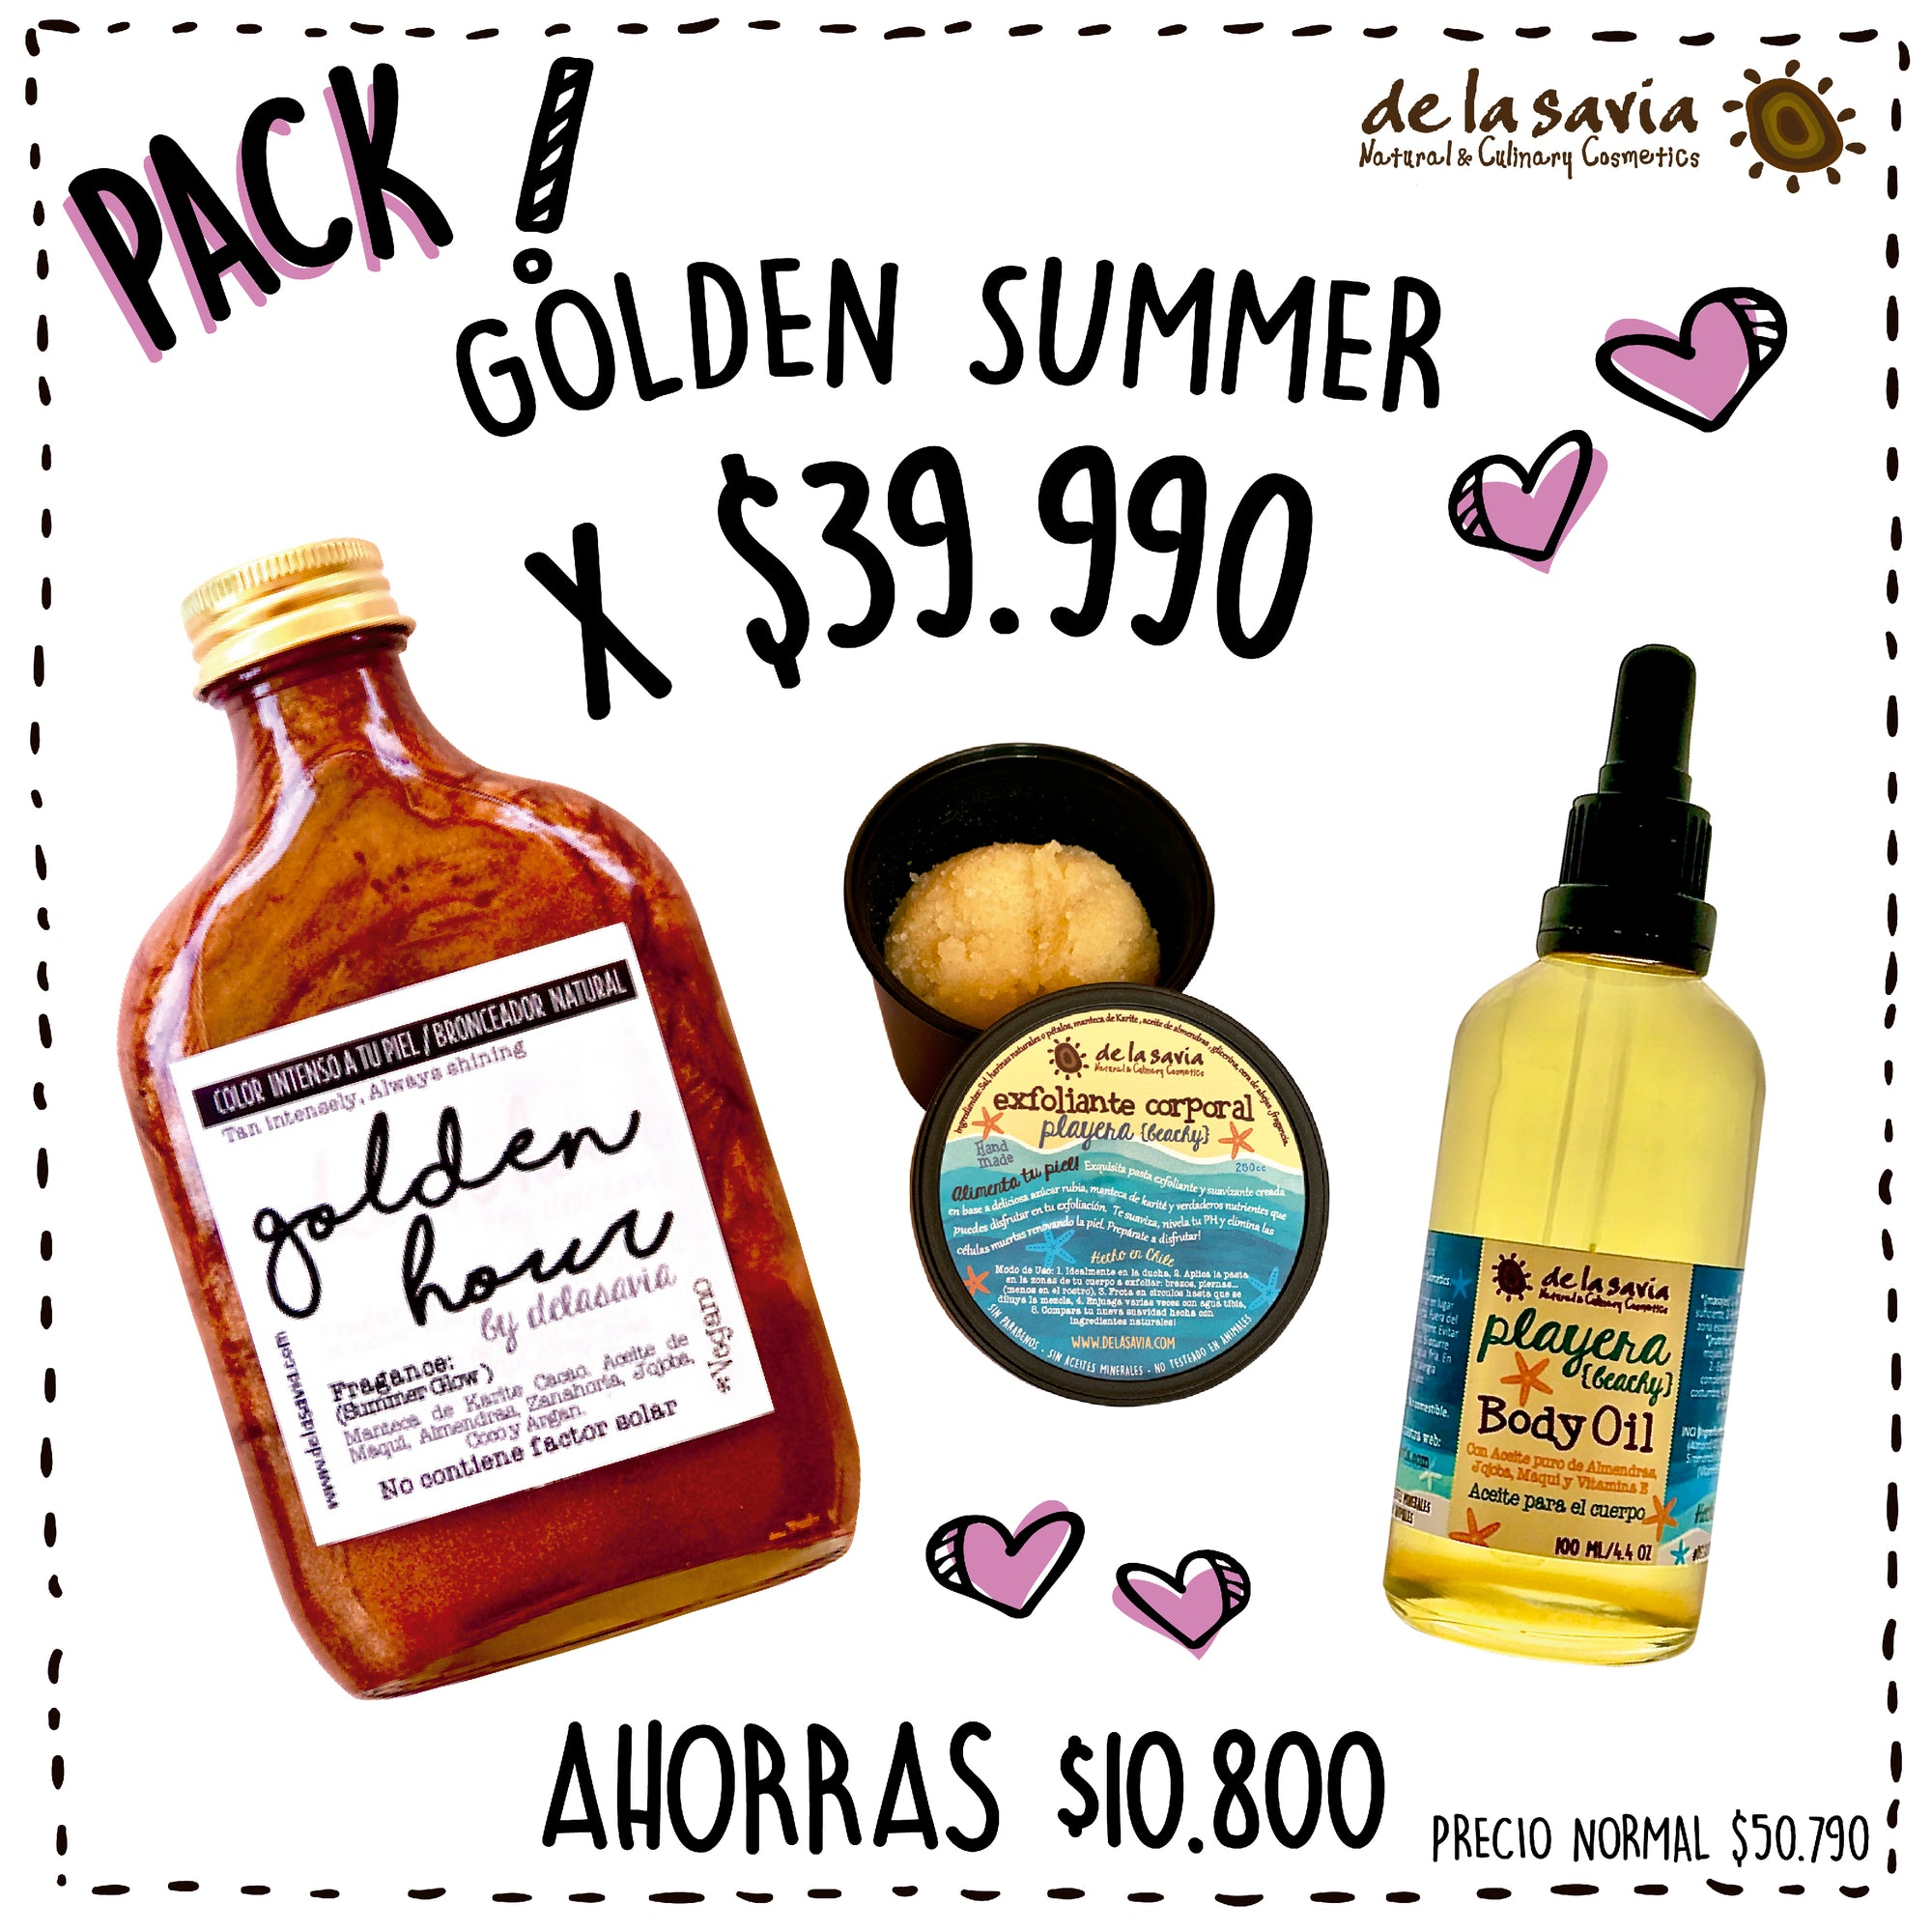 PACK GOLDEN SUMMER